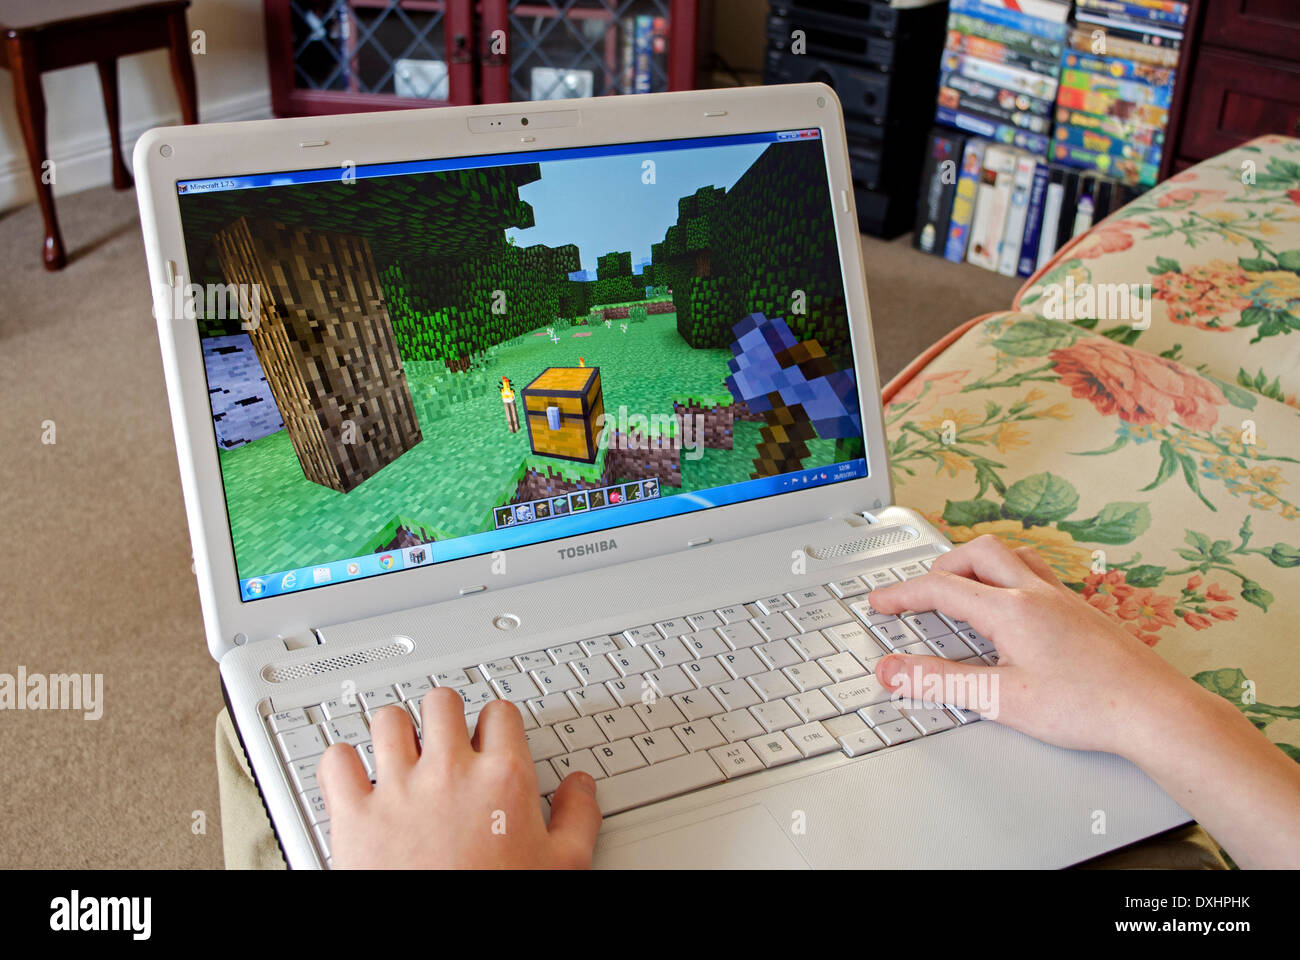 young boy playing minecraft on a laptop computer - Stock Image